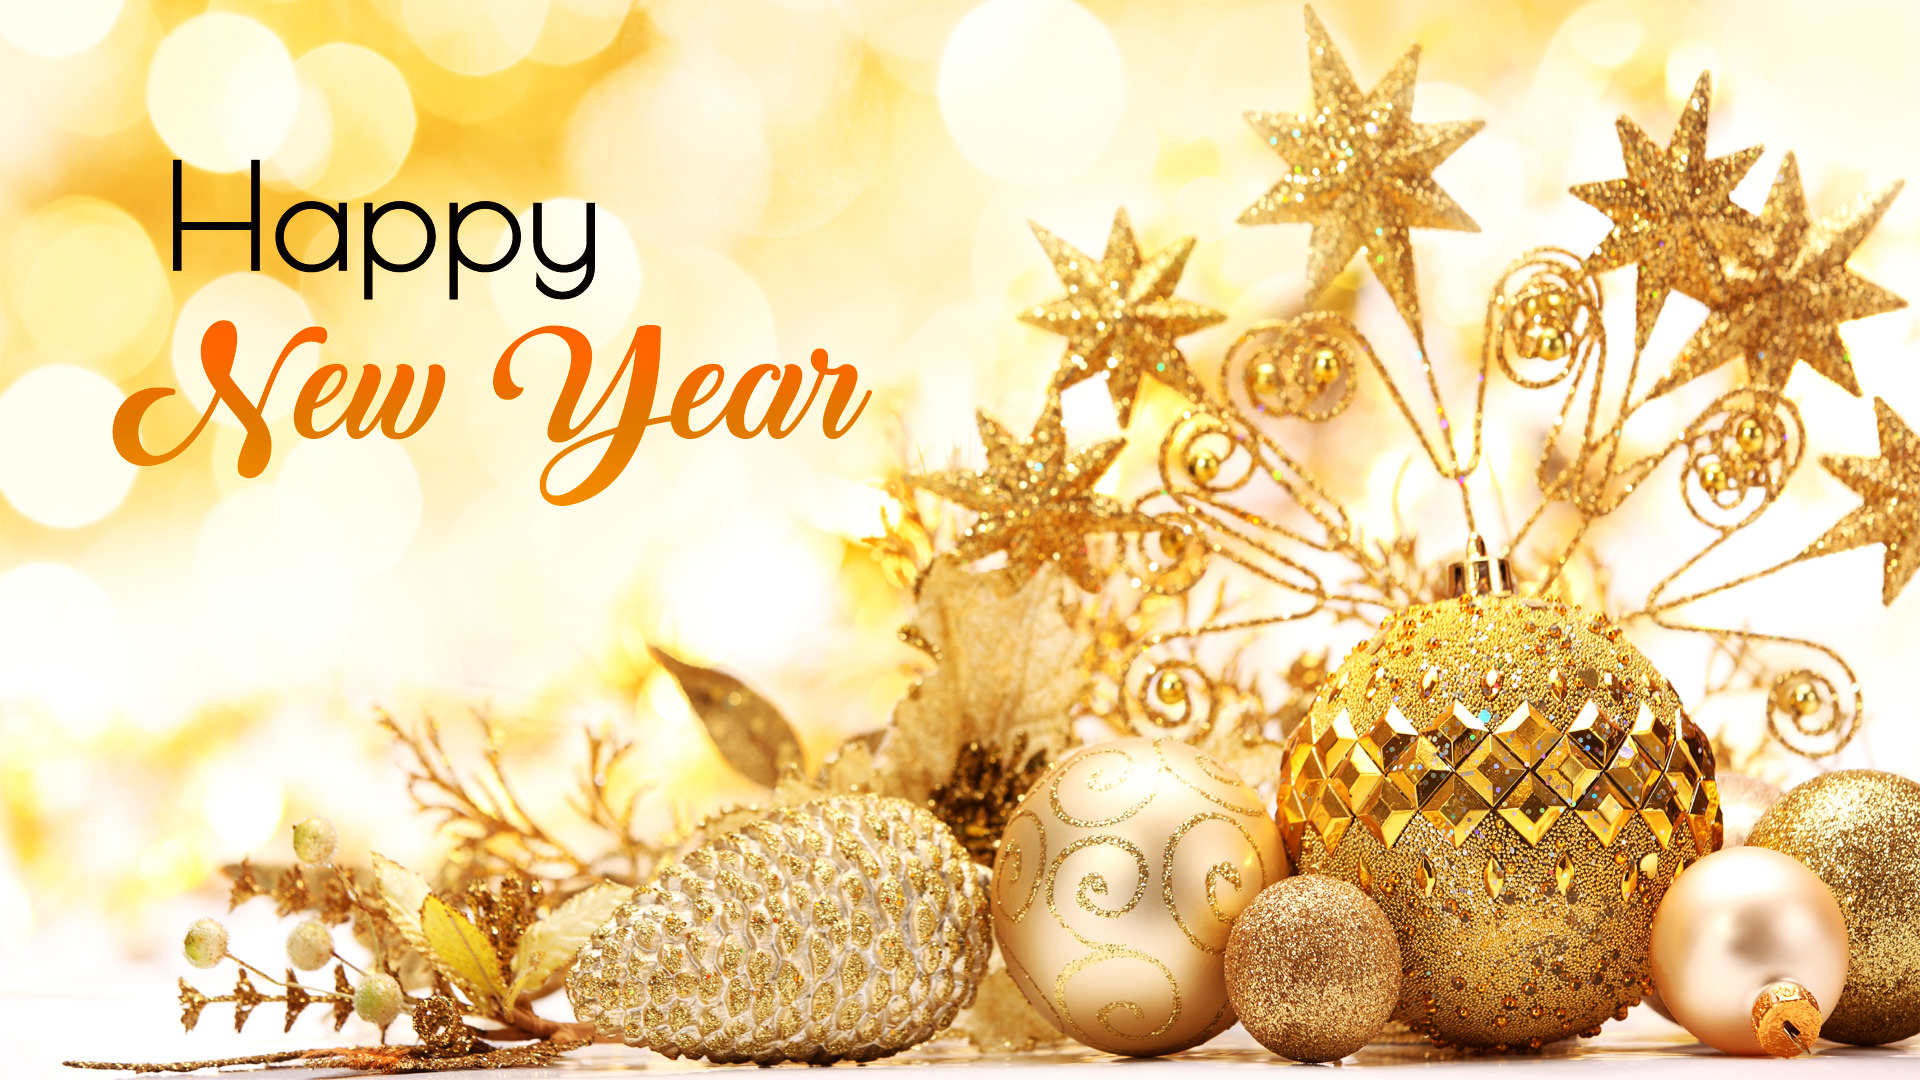 download happy new year wallpaper for laptop click here for full size